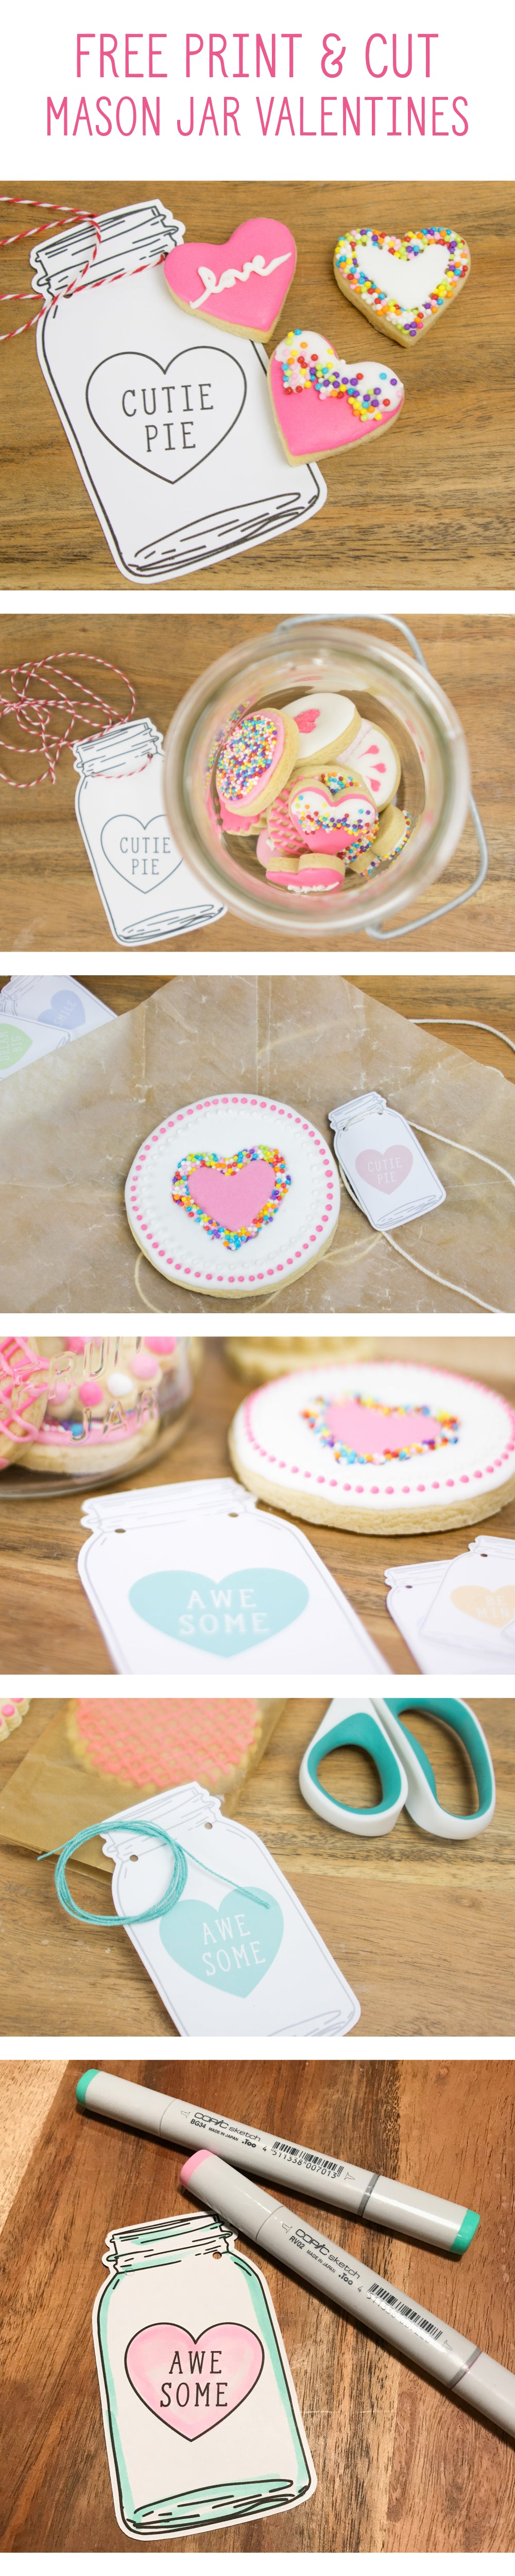 FREE printable pastel colored candy heart mason jar shaped valentines download color and cut and use as gift tags